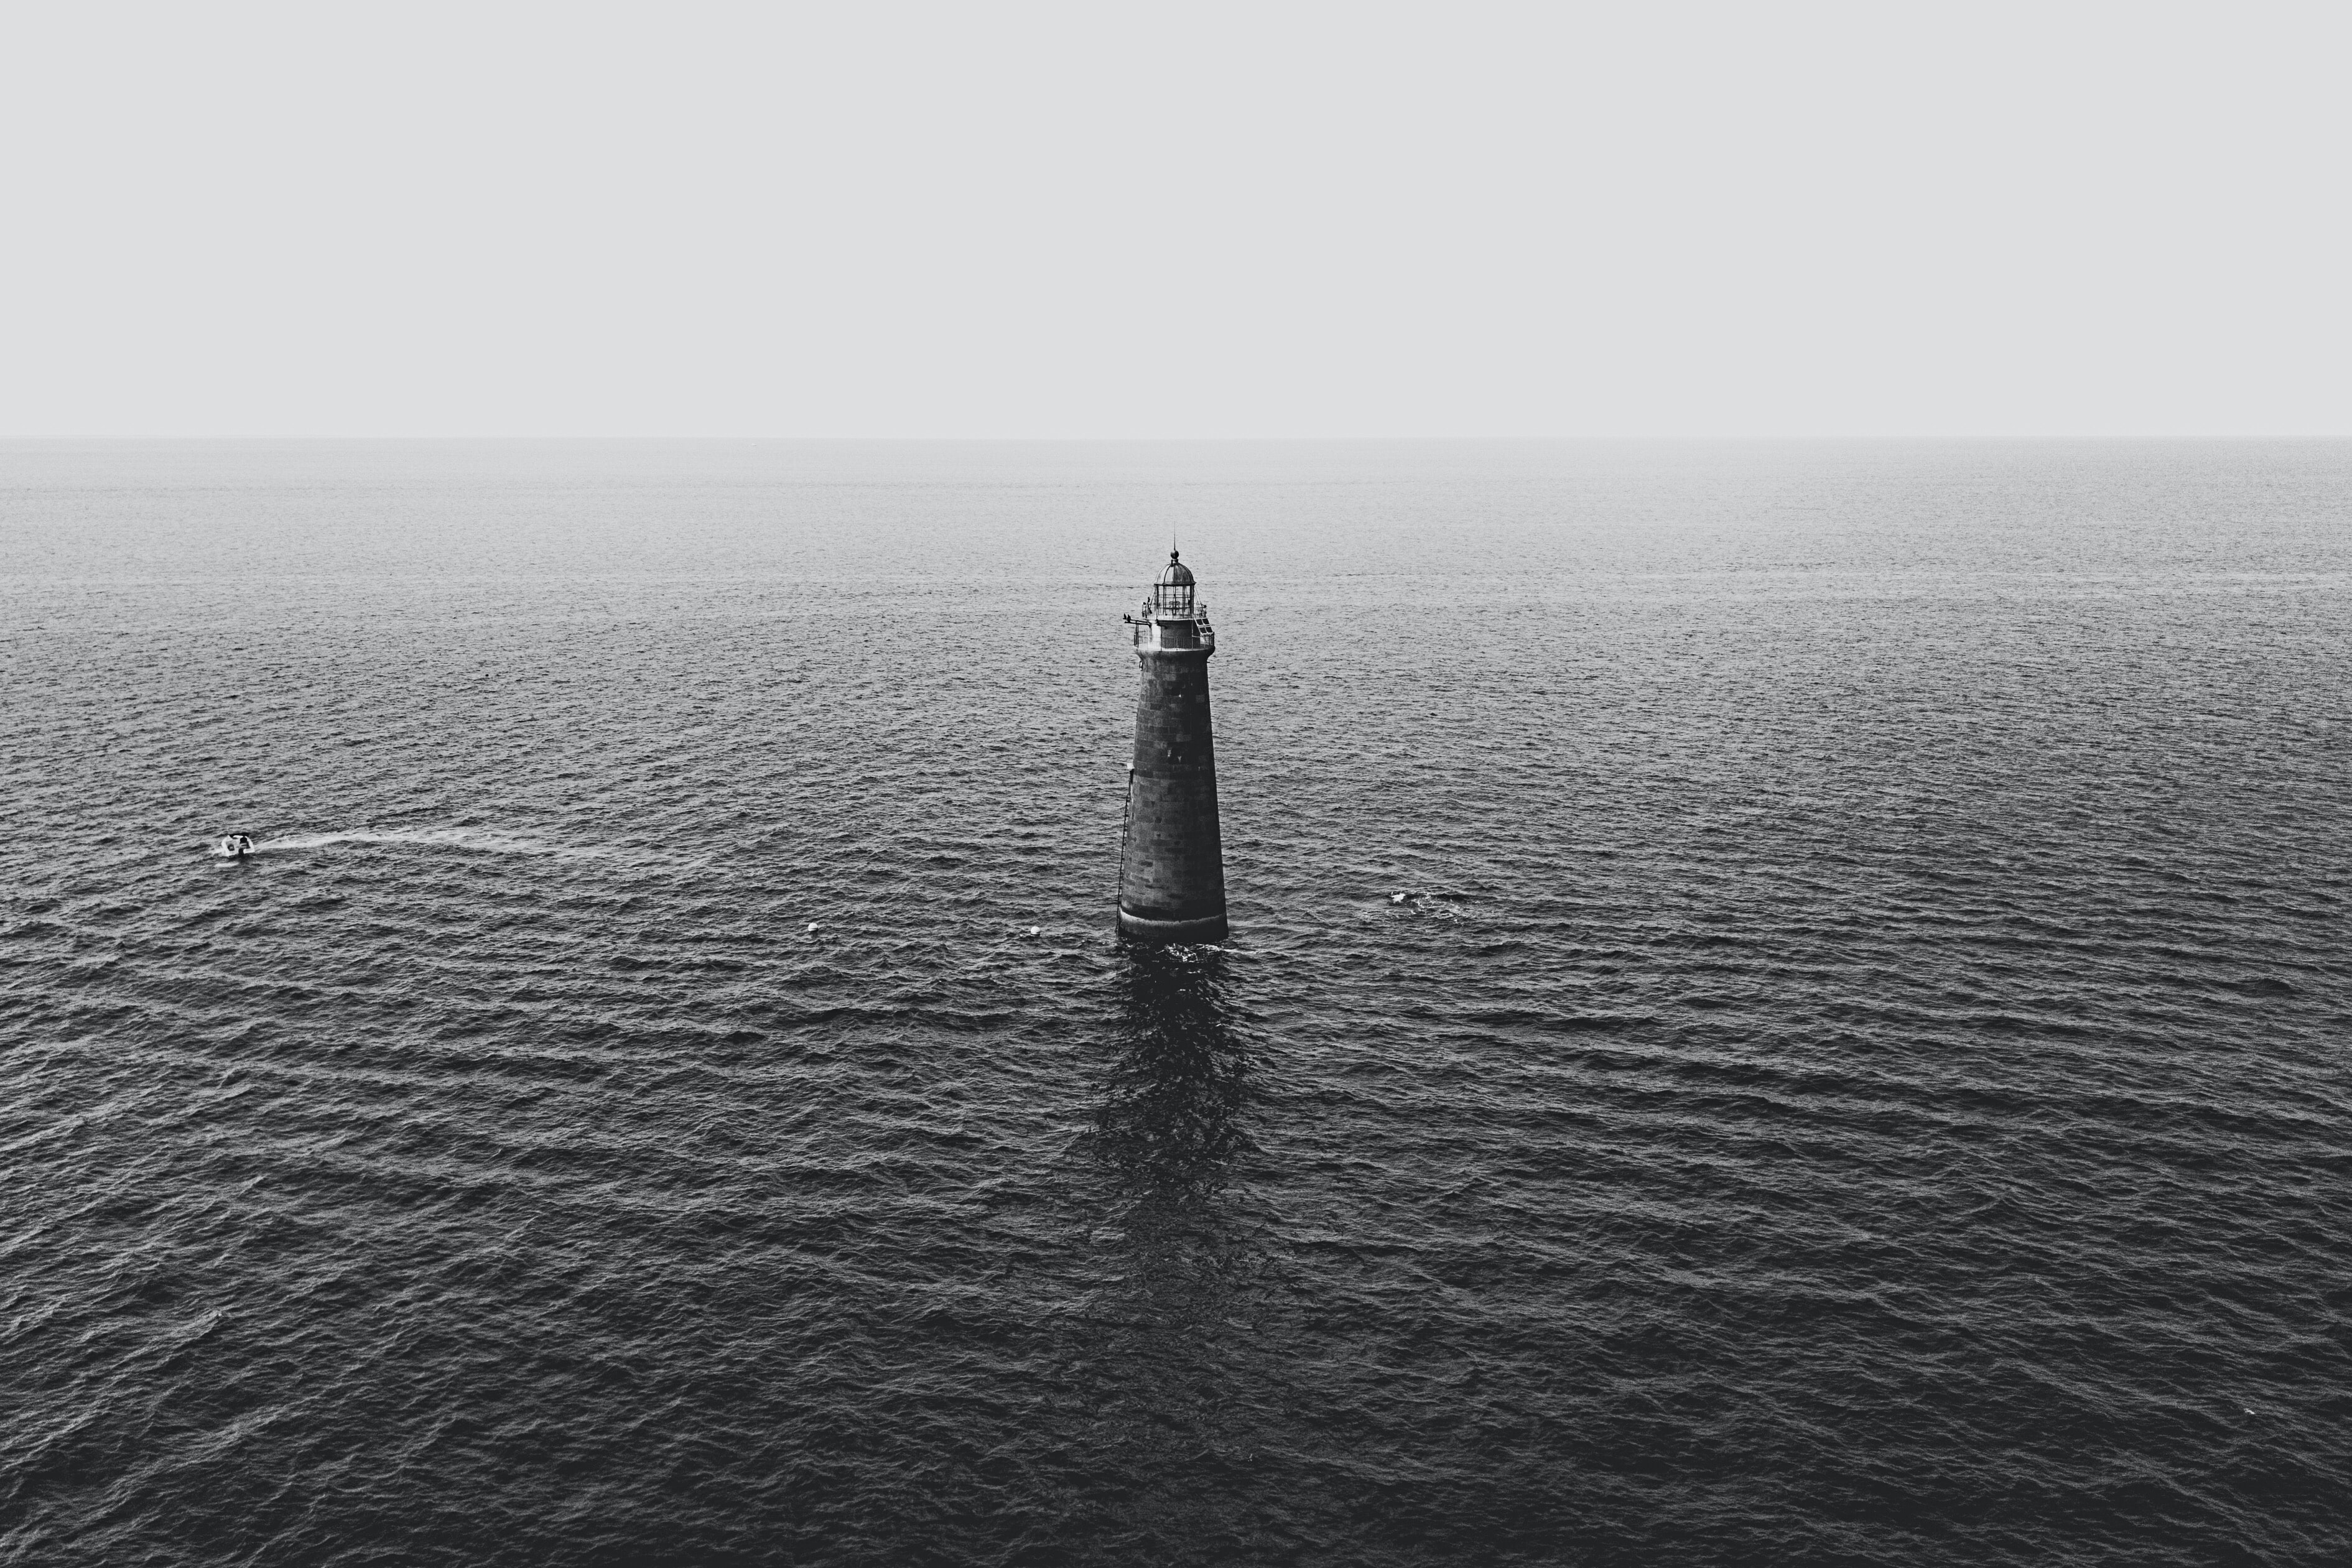 gray concrete lighthouse surrounded by ocean water